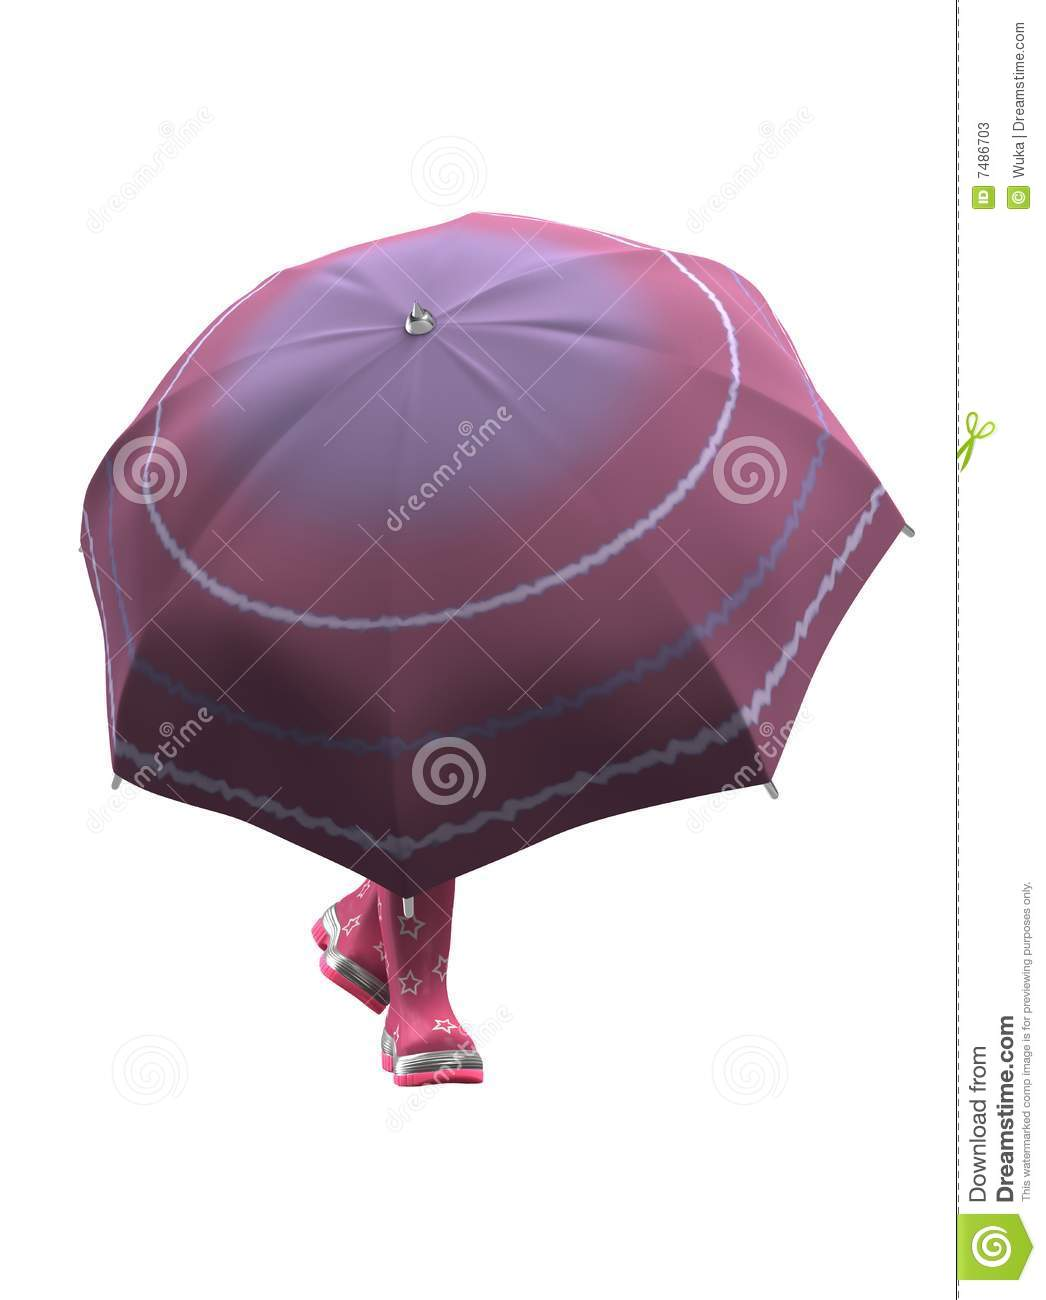 Delivery truck isolated on white background clipping paths included - Funny Pink Rubber Shoes With Umbrella Stock Photos Image